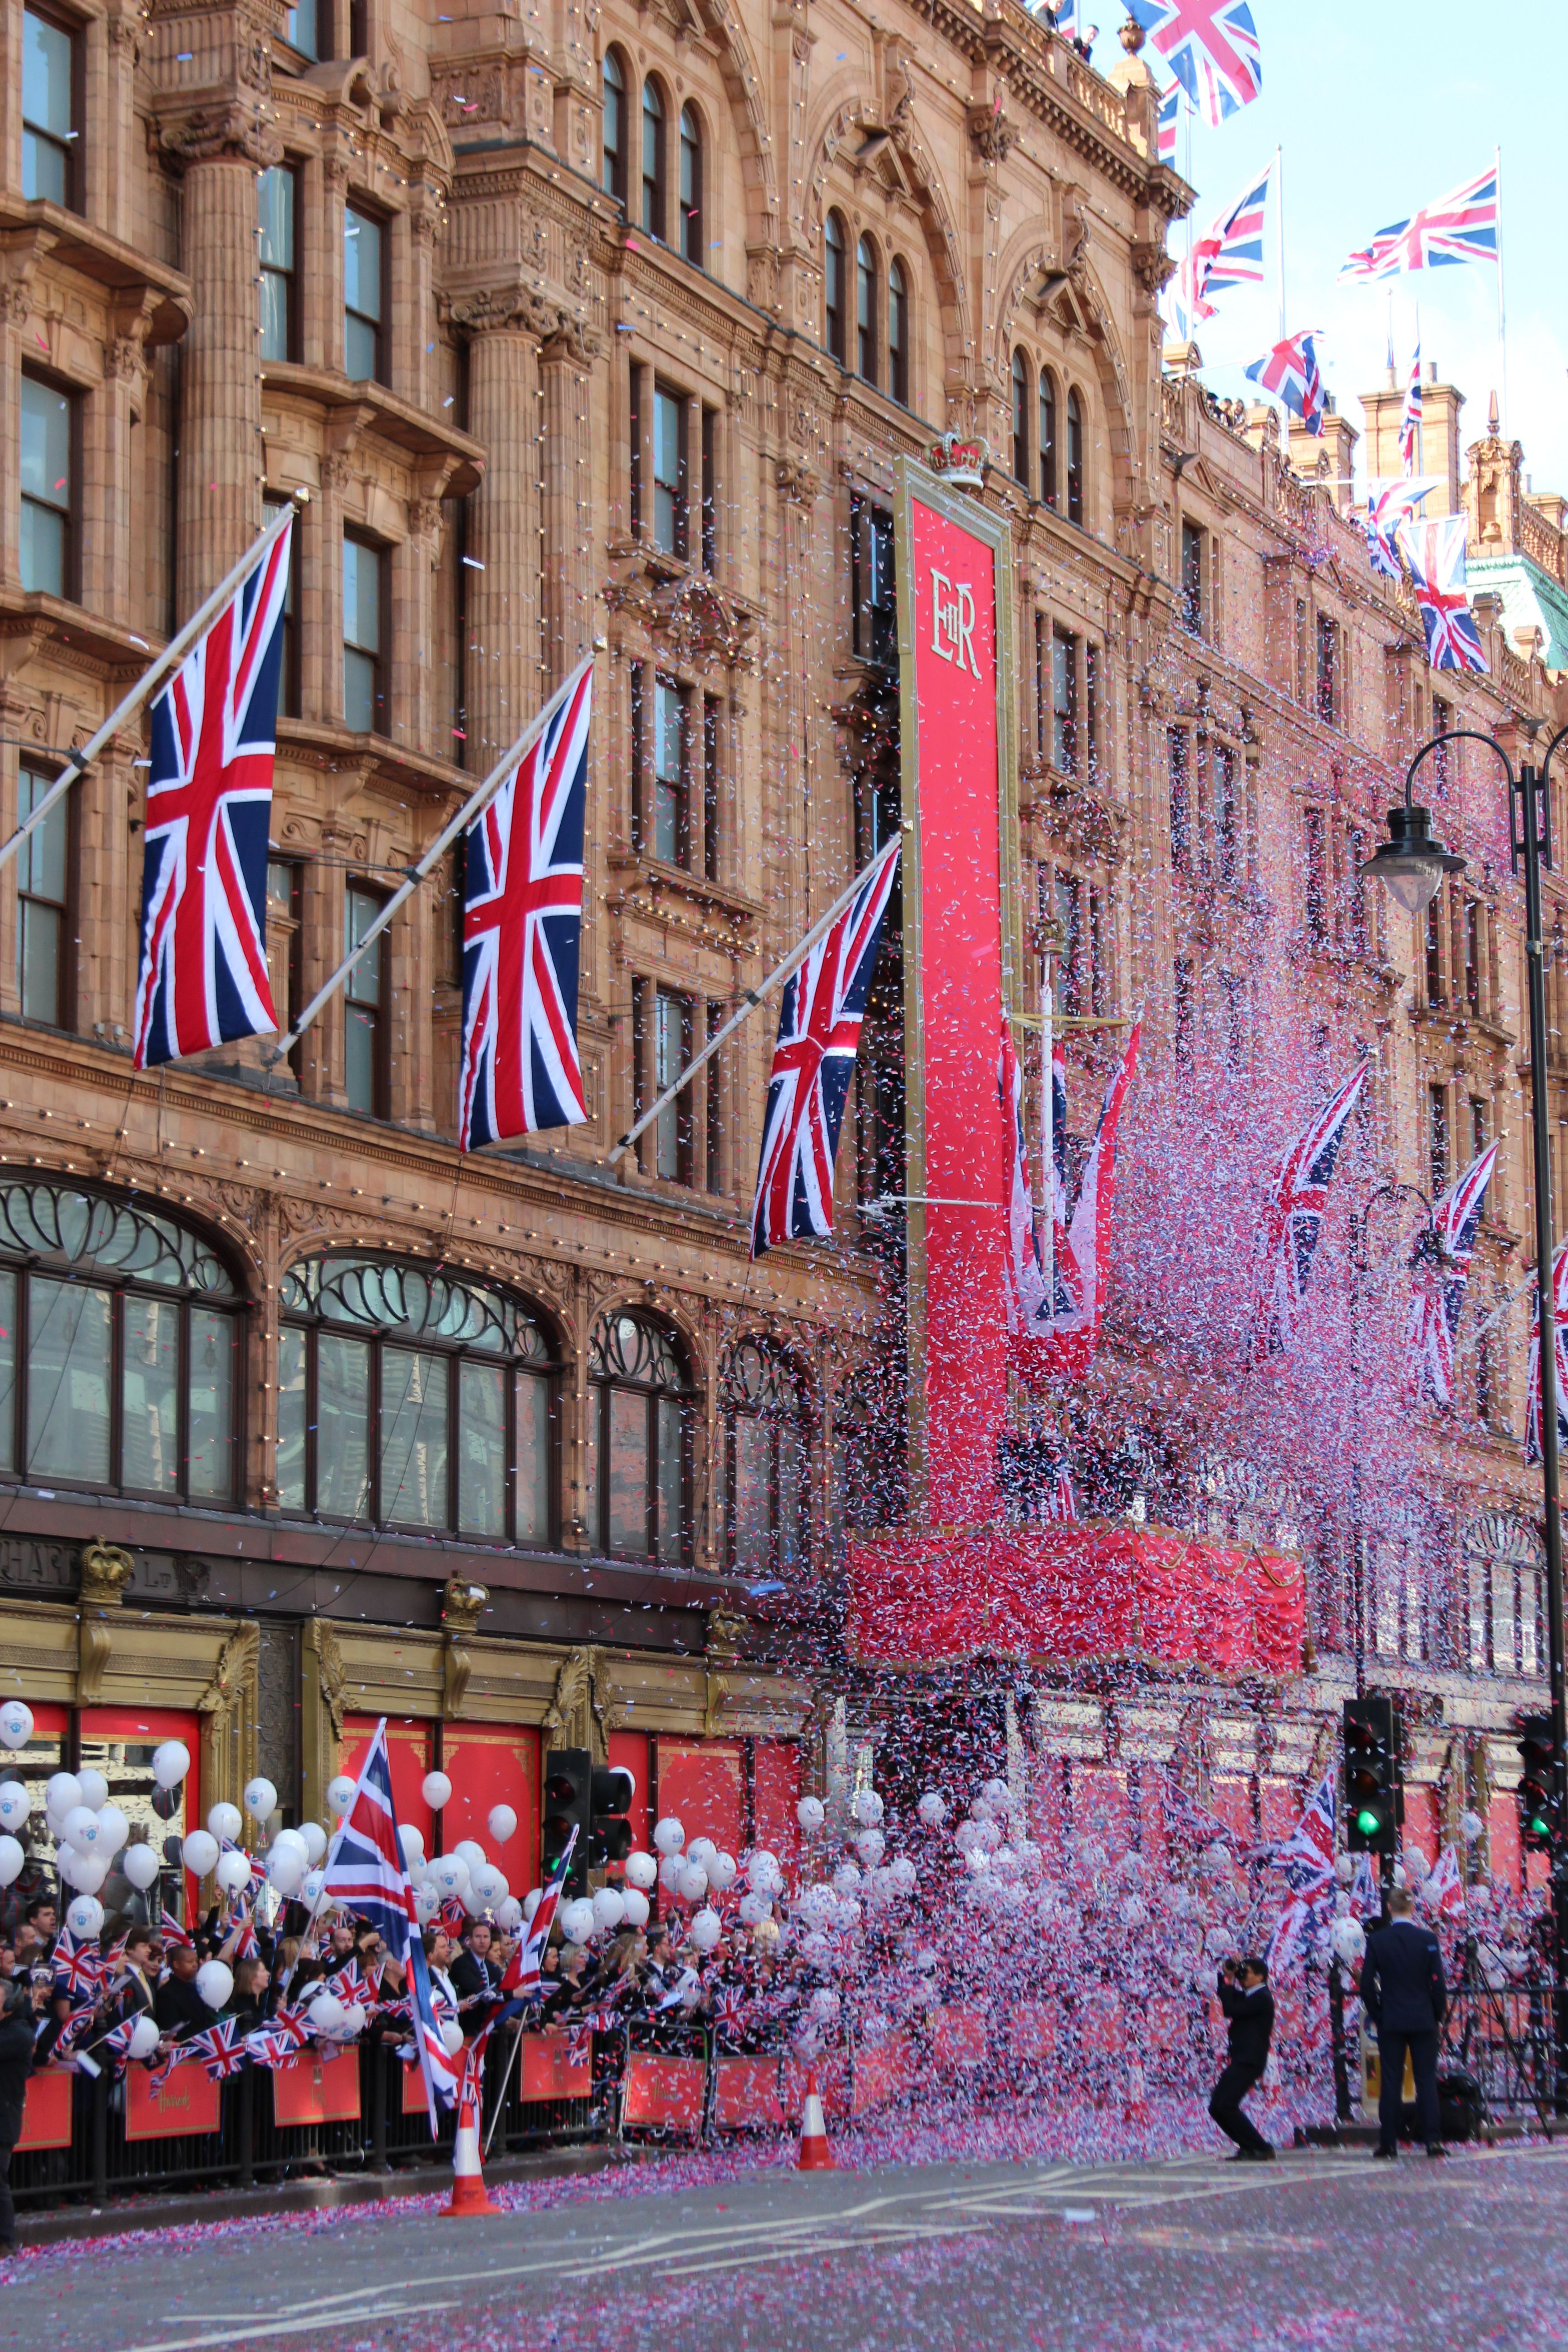 Harrods decorated with Jubilee flags. Our tips for things to do in London.